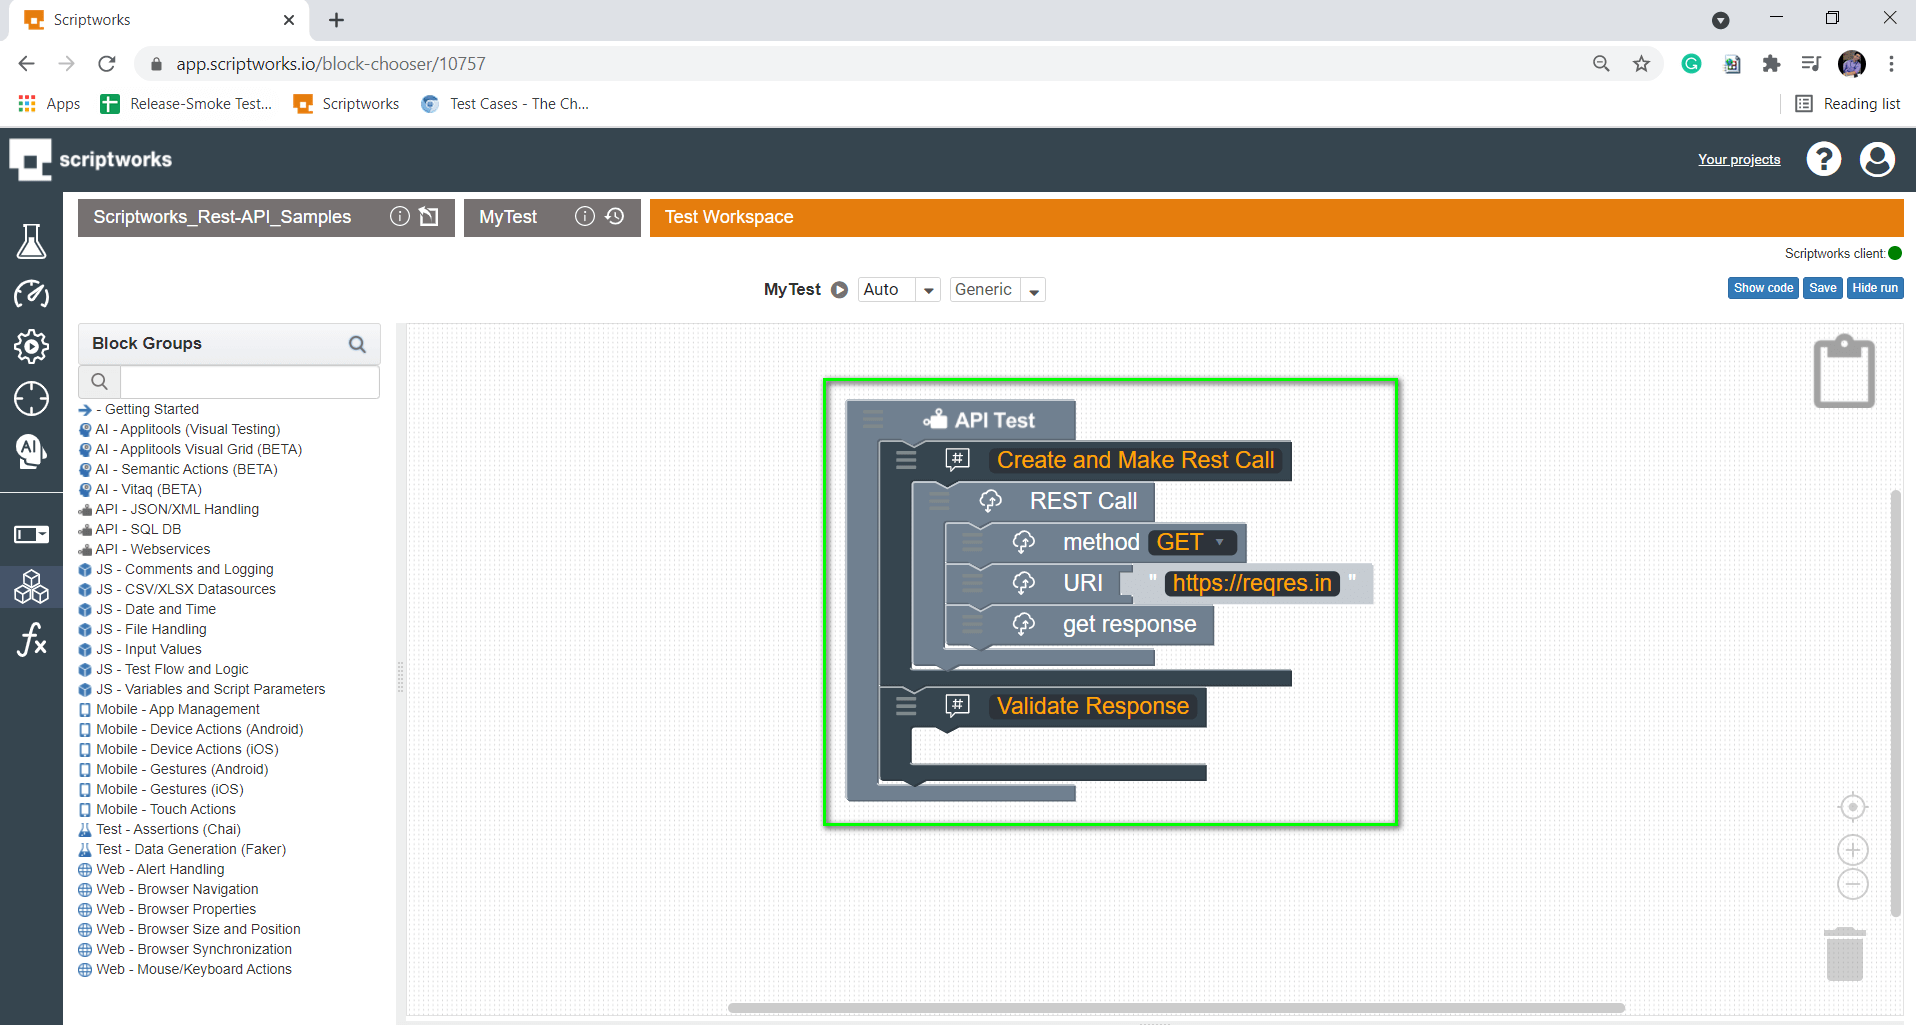 Put validate response inside the comments and in canvas